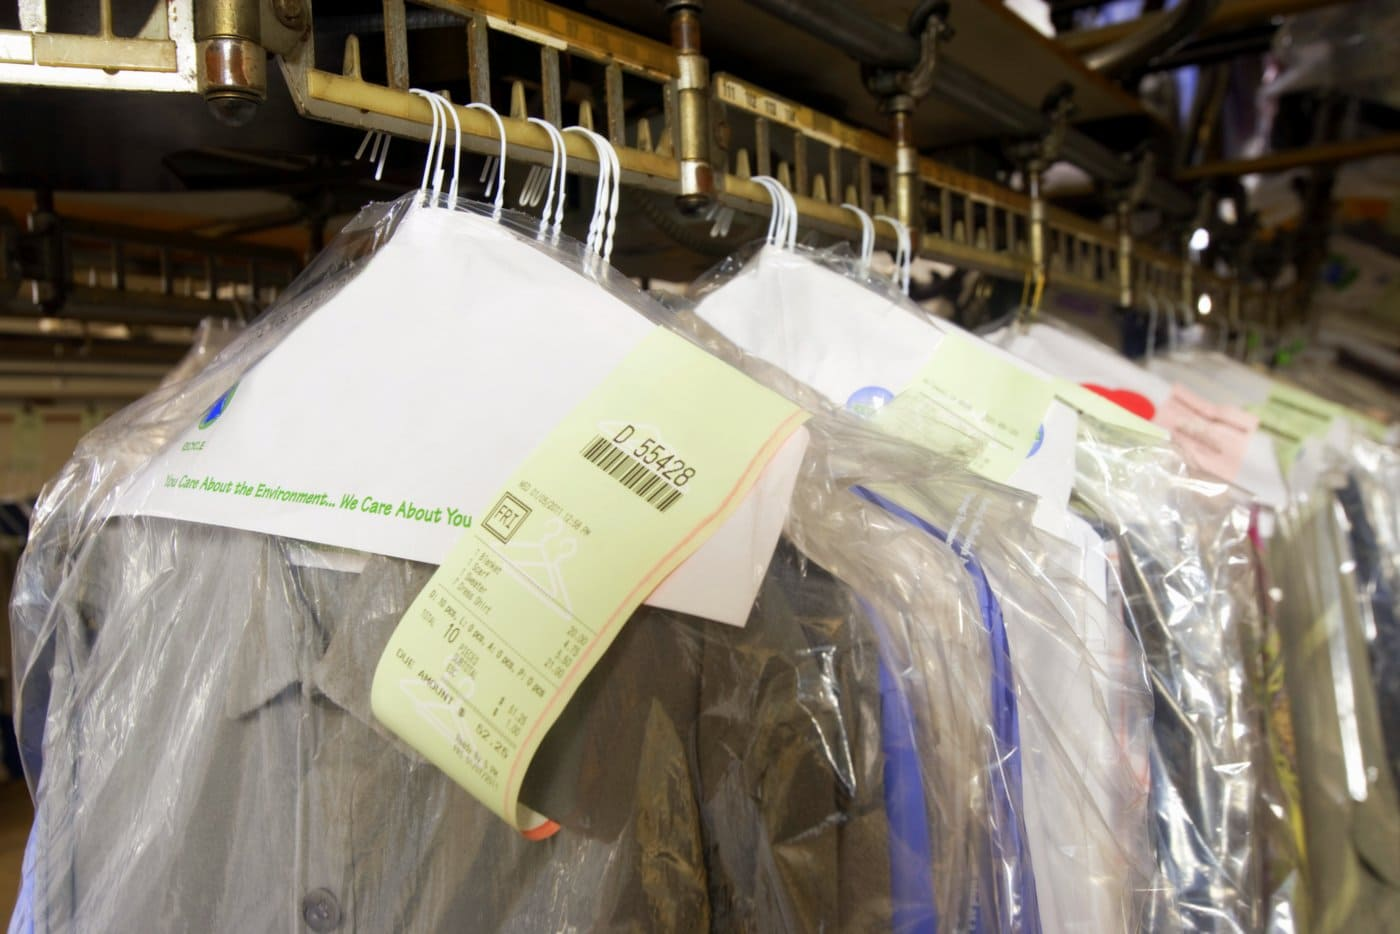 Finished dry cleaning - clothes in bags